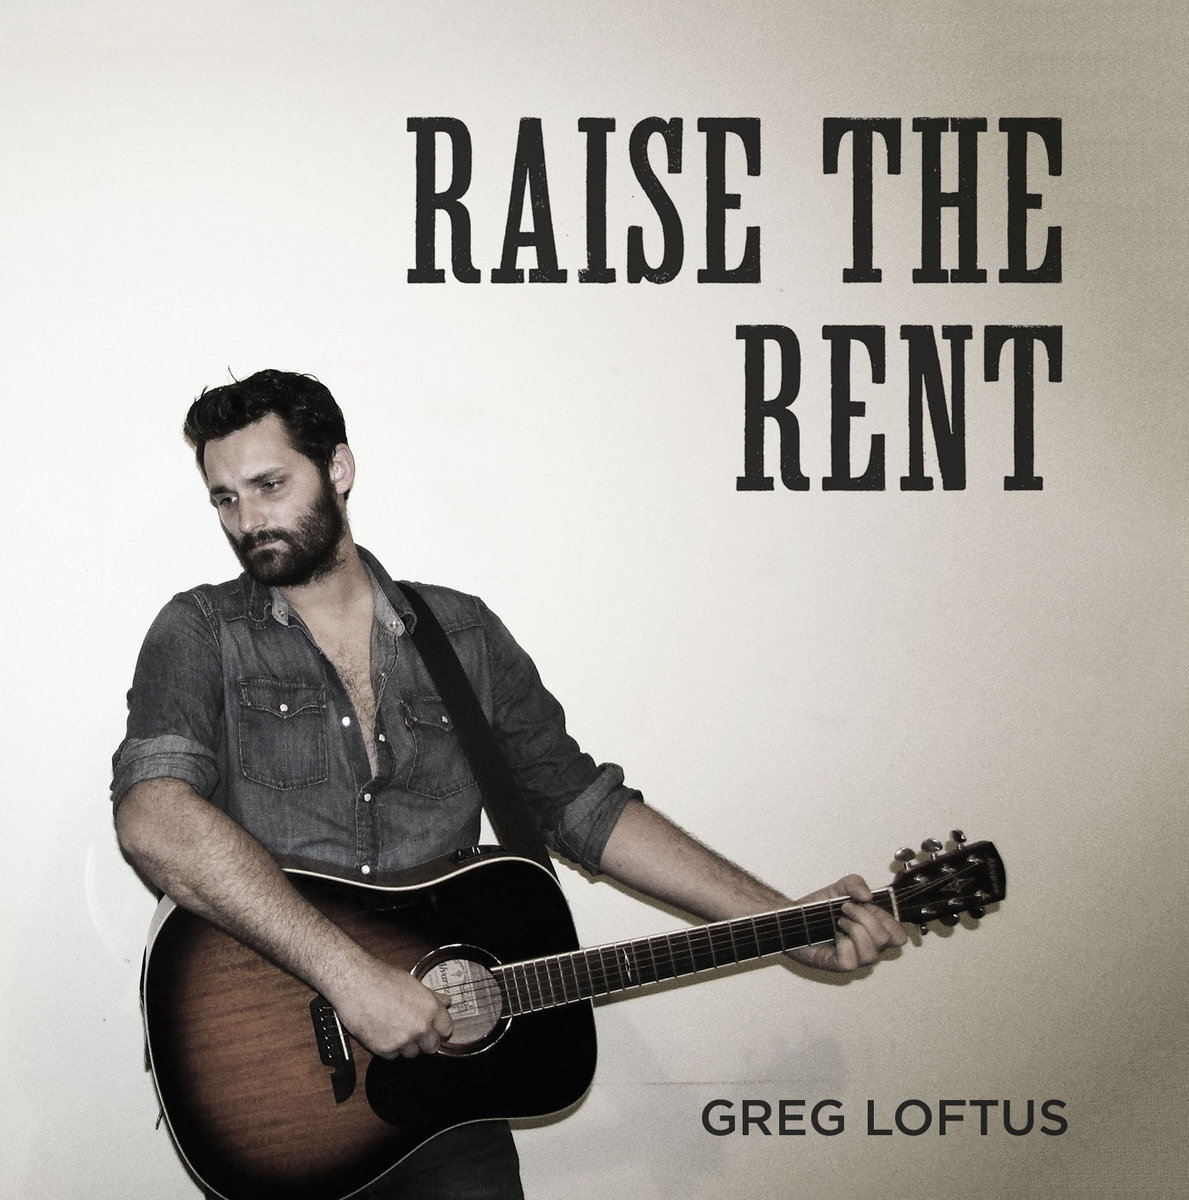 Grit & Sincerity: Greg Loftus releases new record